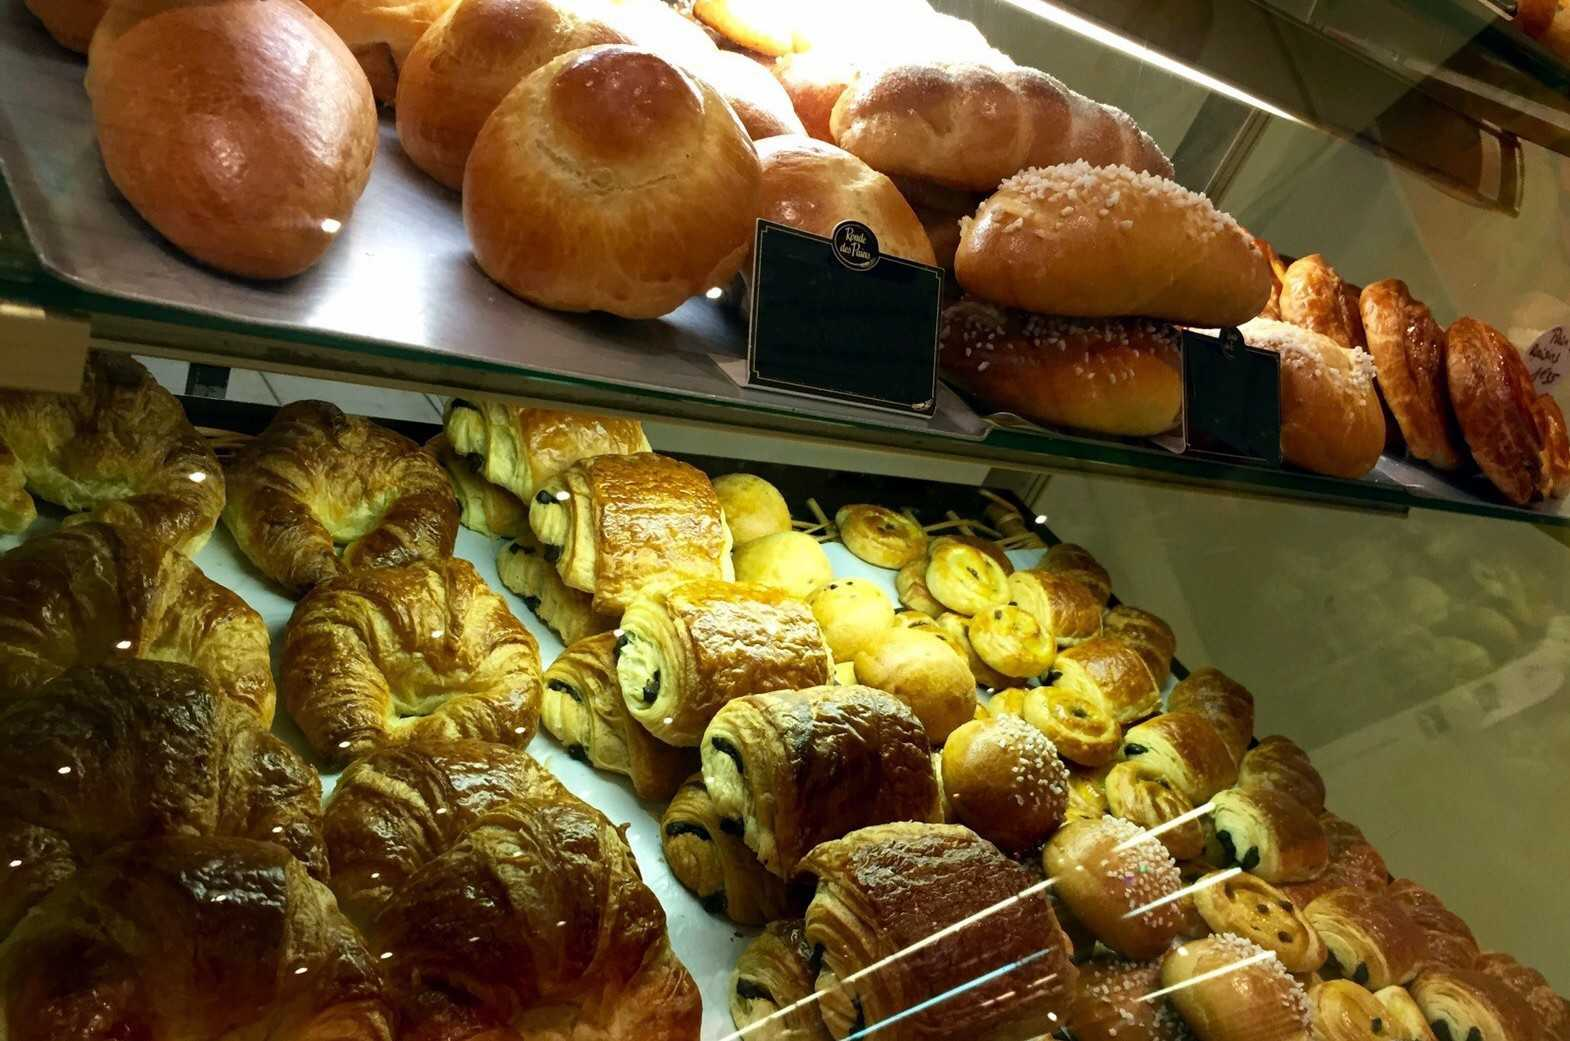 Croissants and Breakfast pastries